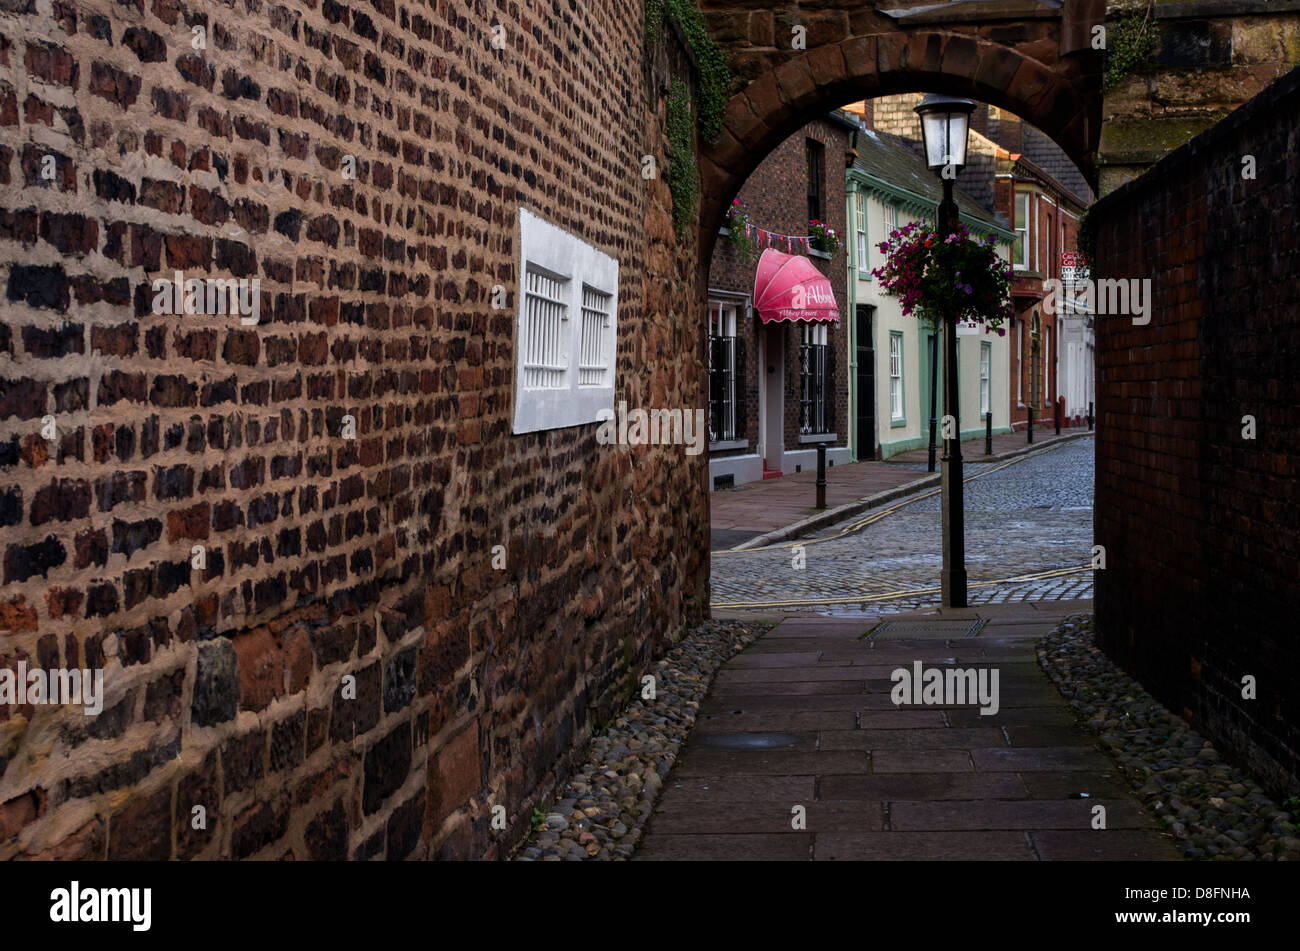 A street view in the old part of town in Carlisle, UK. - Stock Image